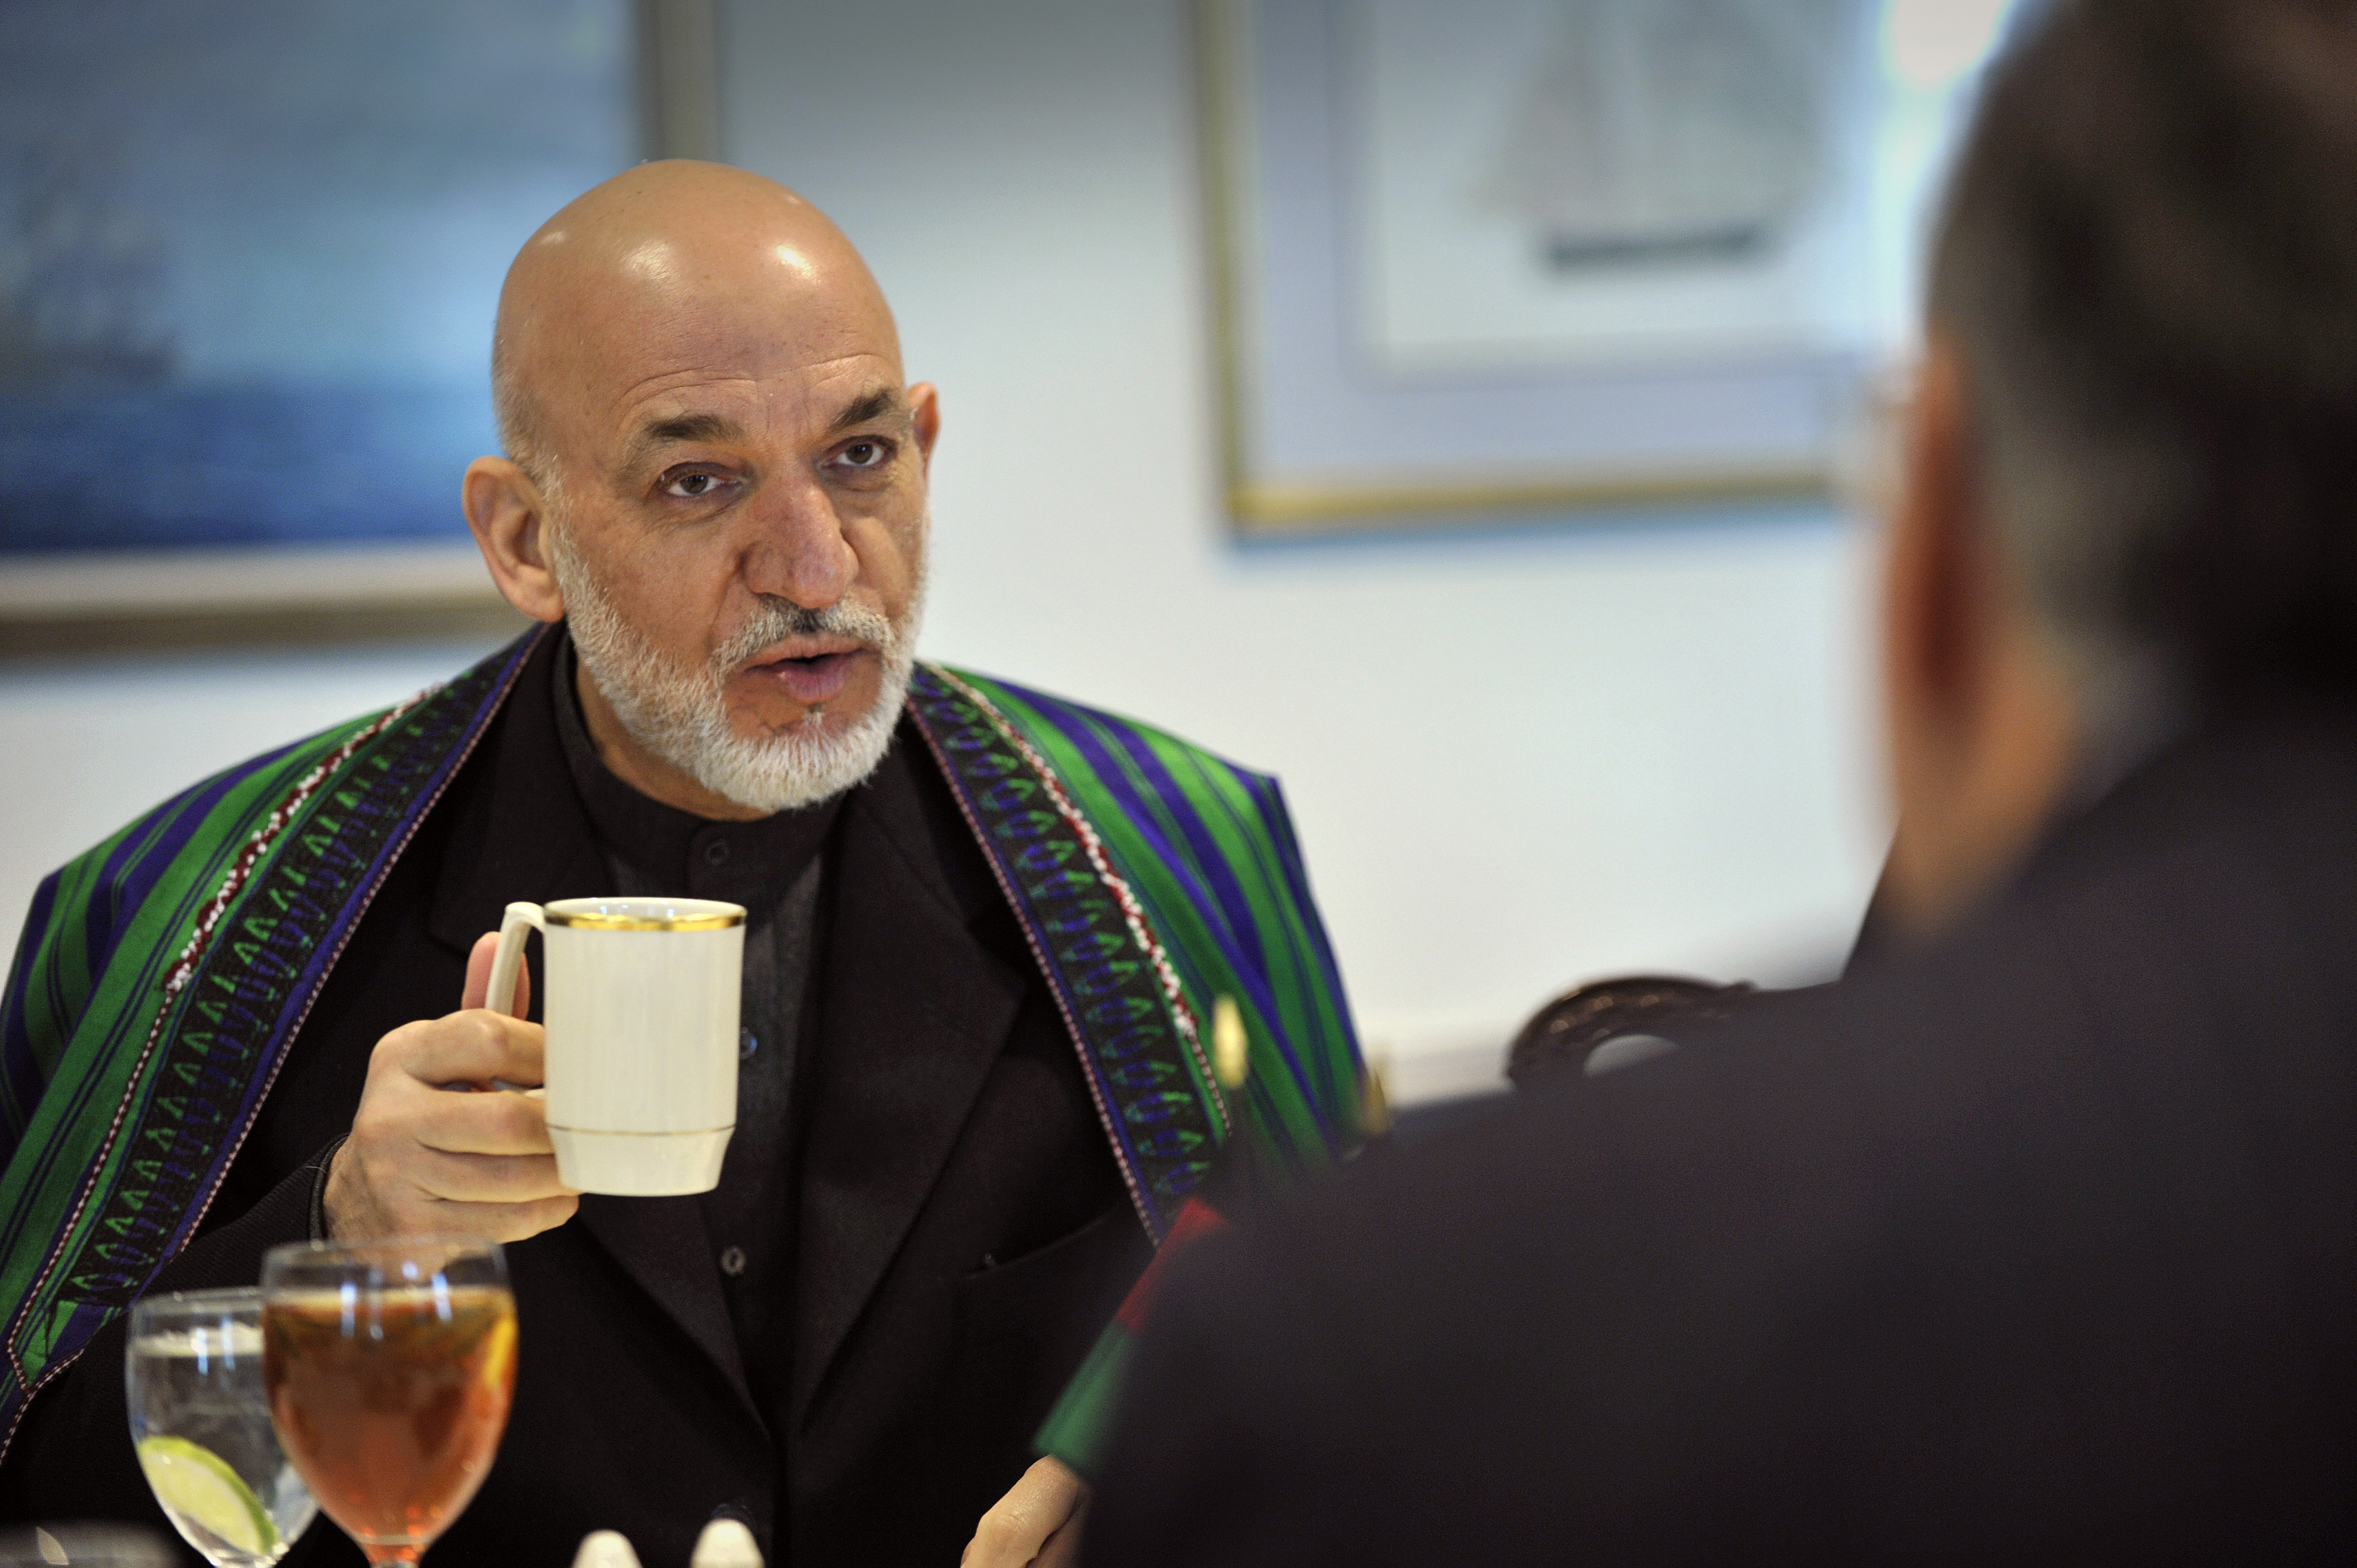 fileafghanistans president hamid karzai offers a brief cultural exchange discussing tea etiquette back in his country as he gestures with a pentagon cup